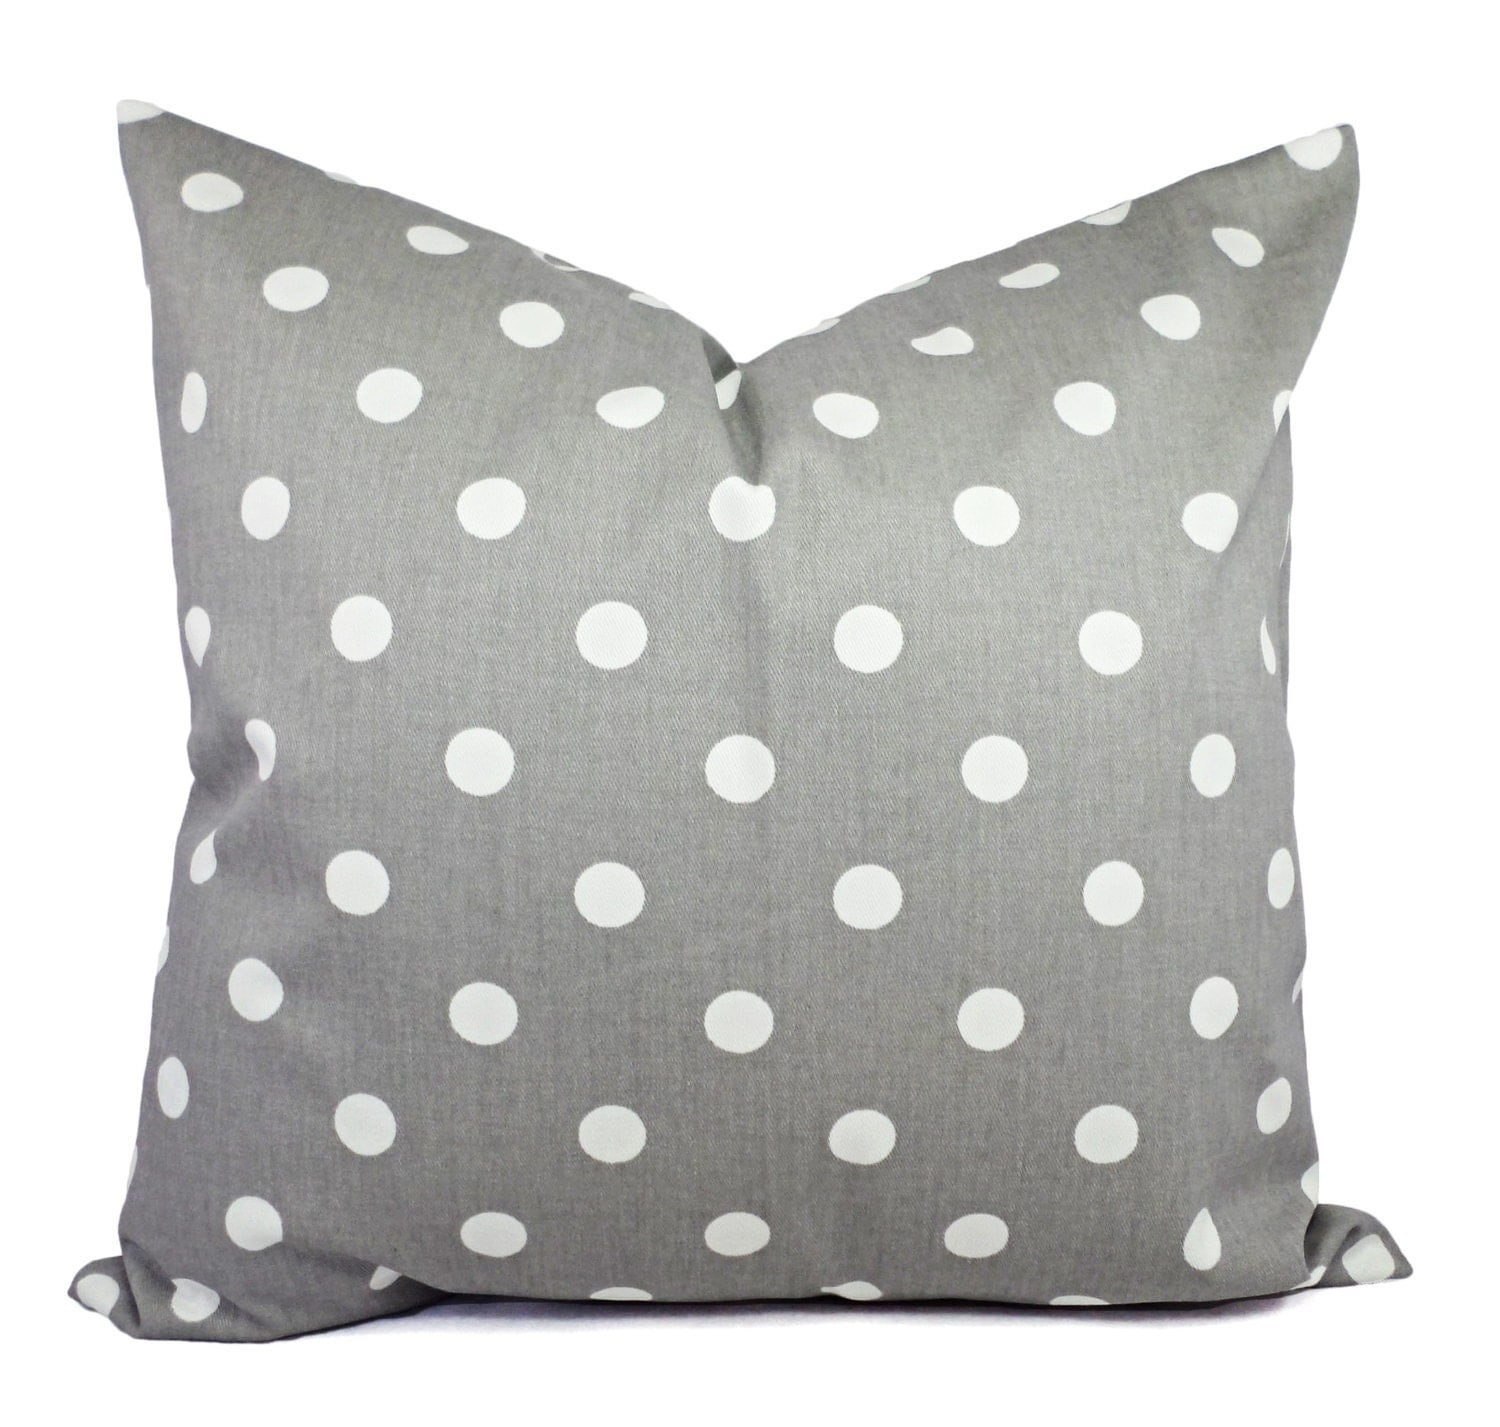 Two Decorative Throw Pillow Covers Grey And White Polka Dot